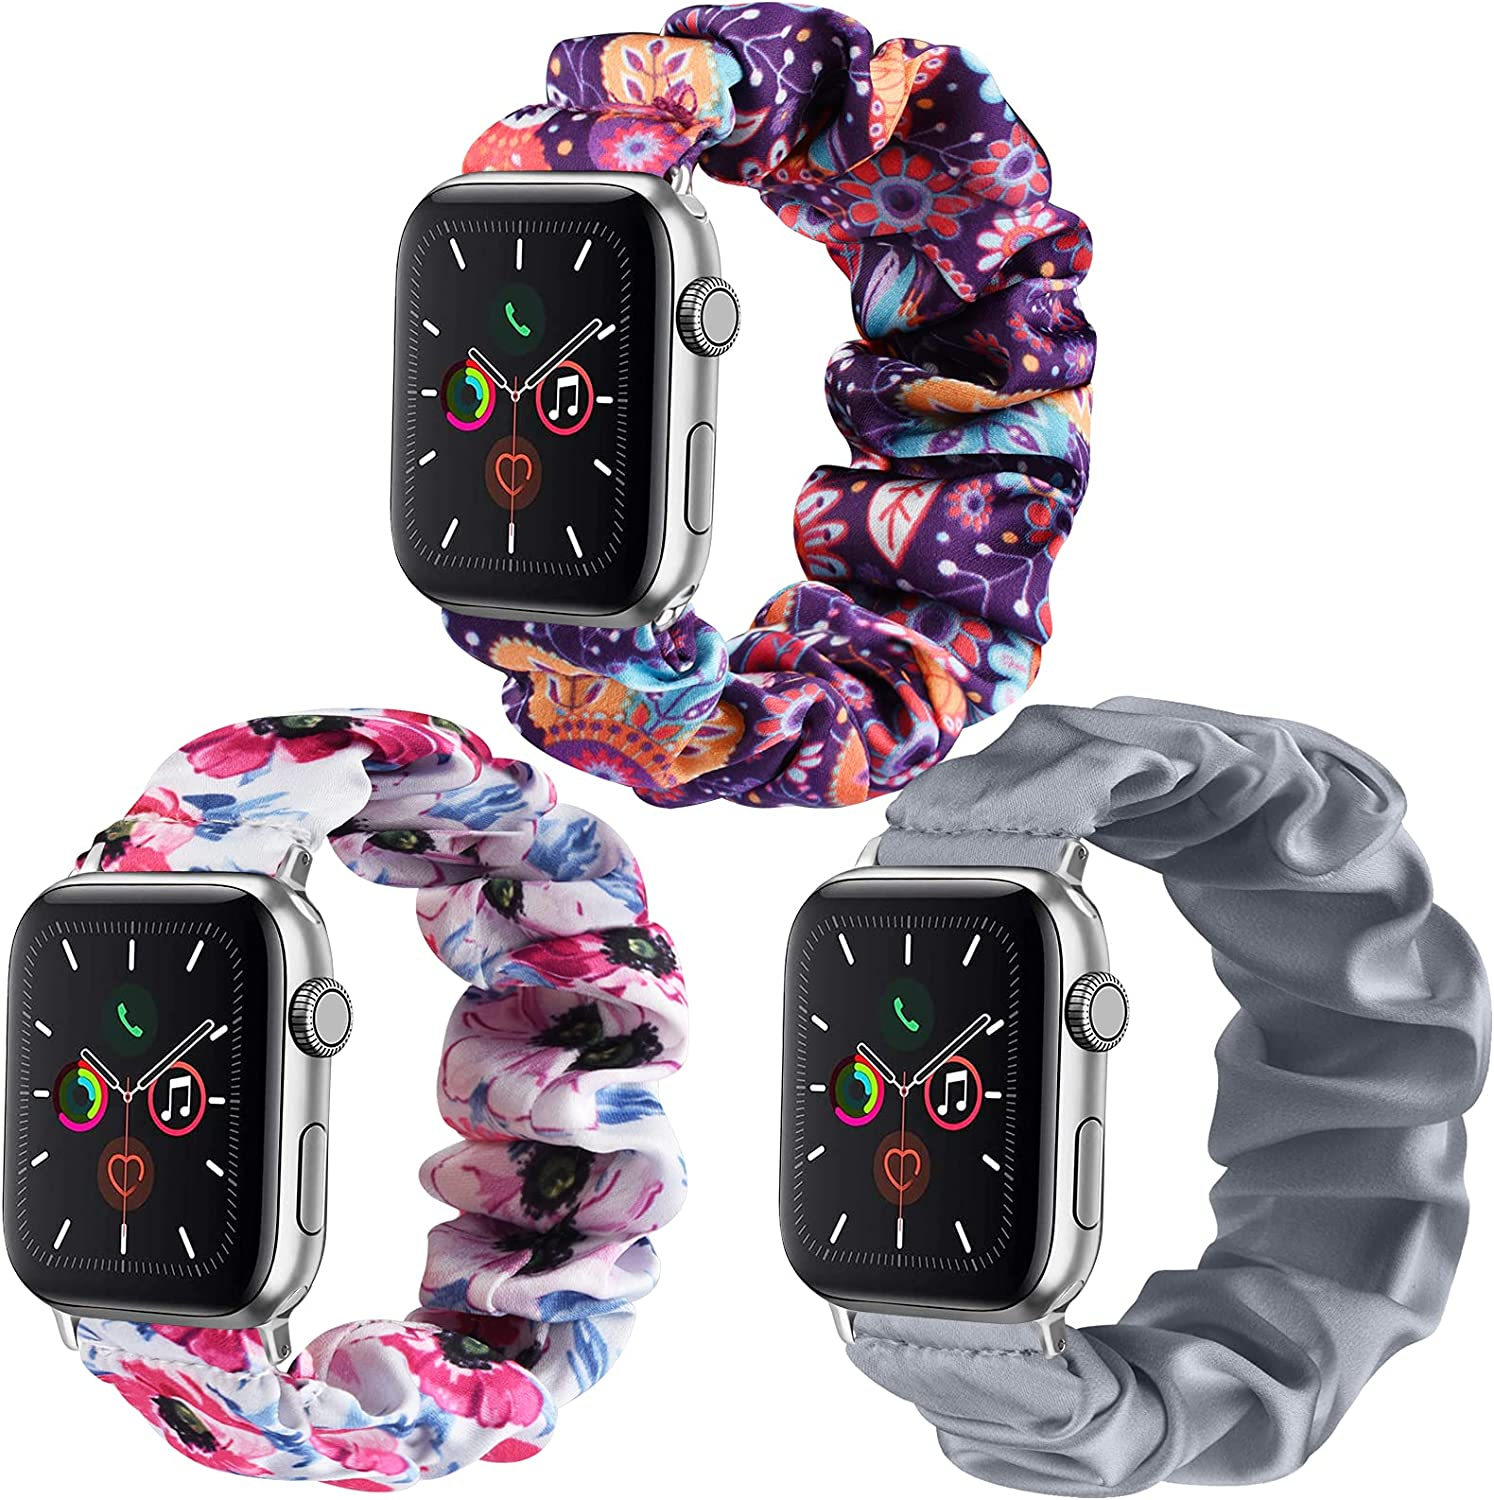 Mugust 3 Pack Compatible for Apple Watch Bands 38mm 40mm Scrunchies Elastic Watch Bands Women Bracelet Strap for iWatch Series 6 5 4 3 SE 2 1 (38mm/40mm M/L, Grey+Purple Flower+Pink Flower)